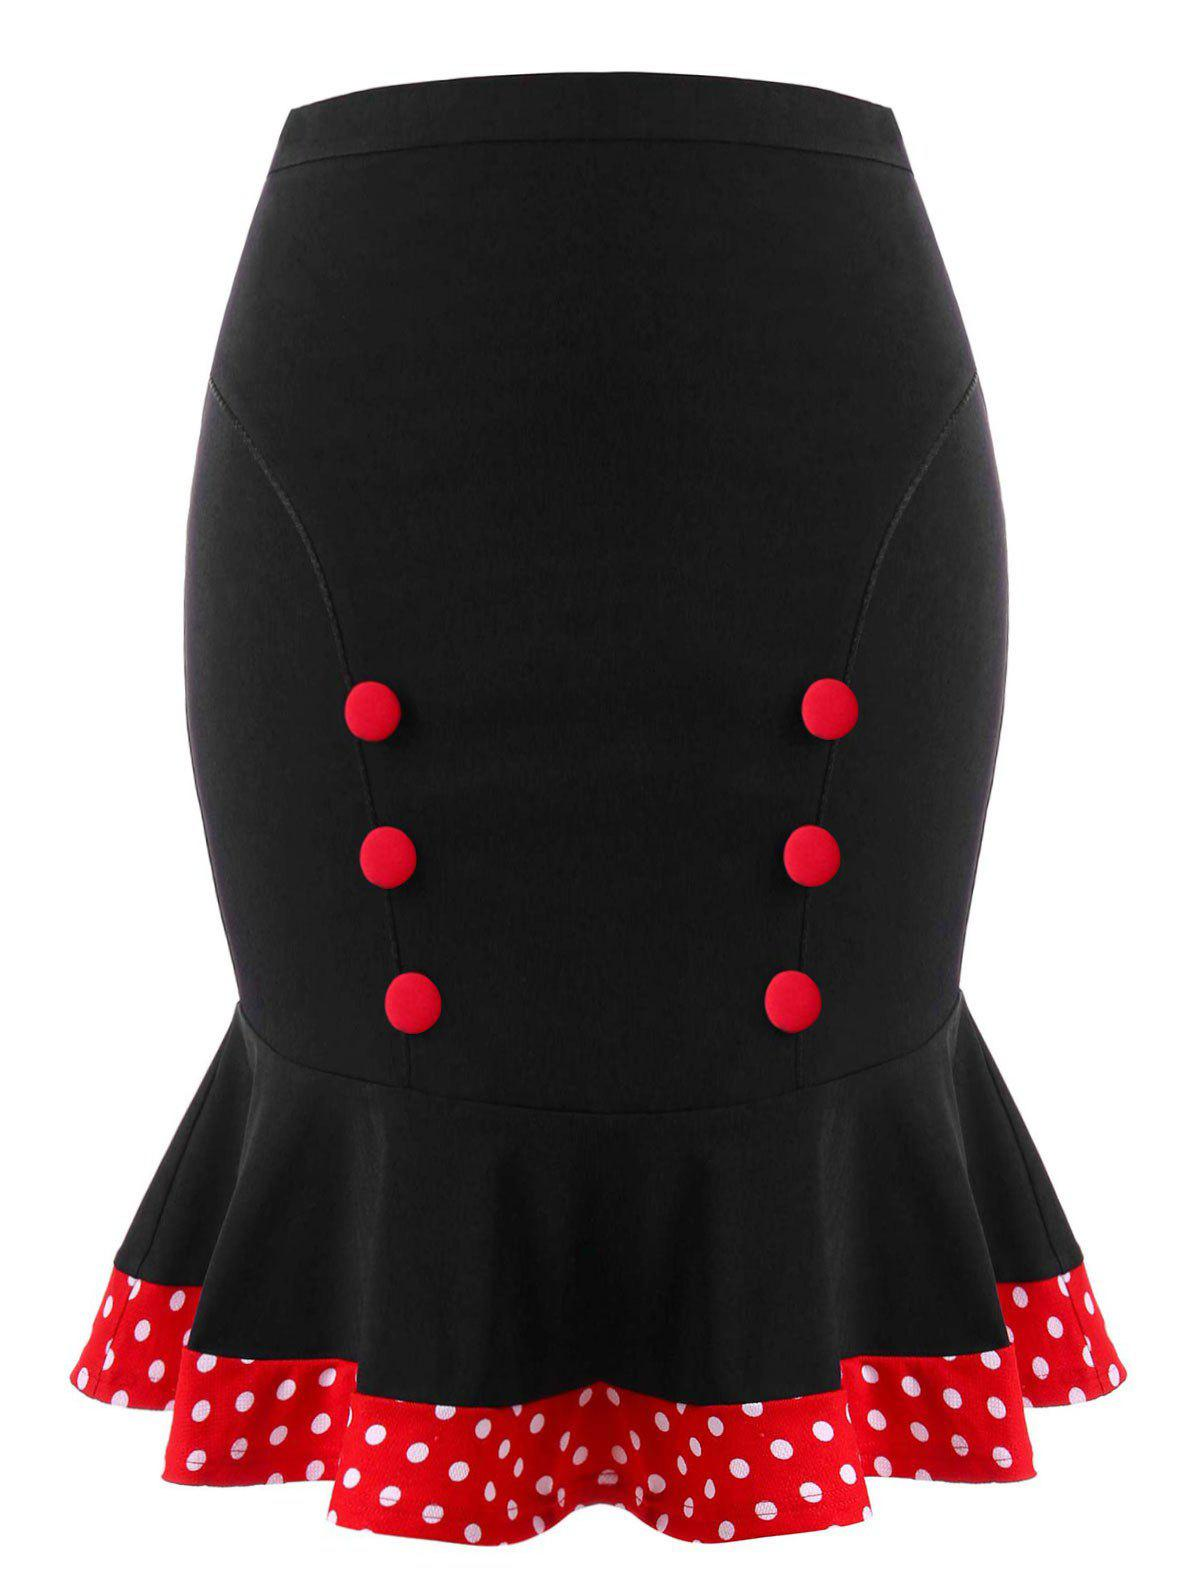 Plus Size Retro Polka Dot Mermaid Skirt - BLACK XL